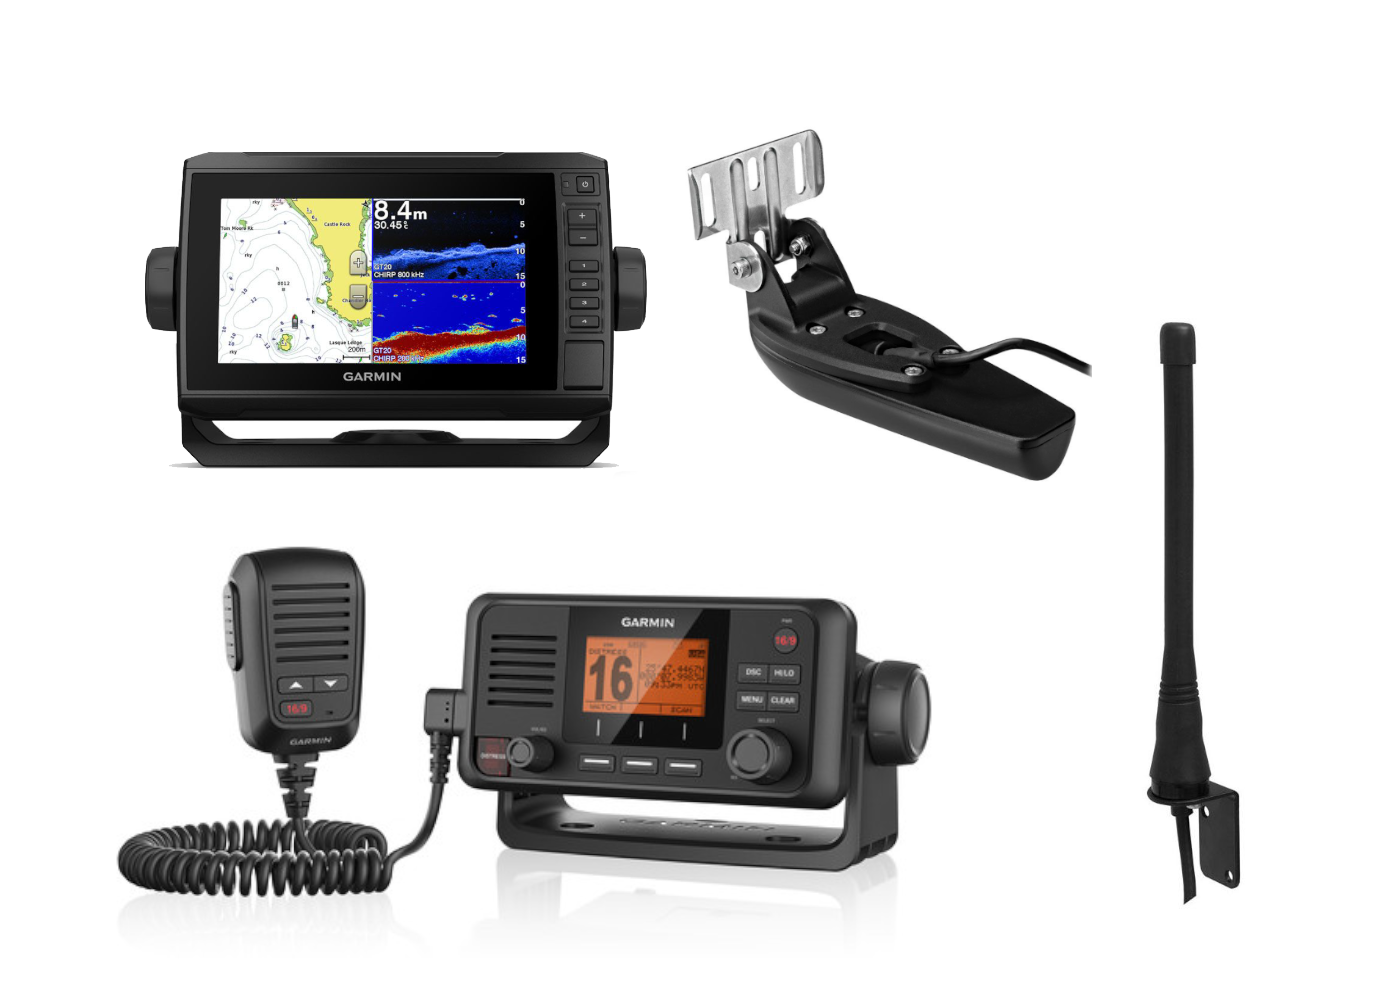 Electronics Pack 3 - Garmin 75CV & VHF115i Kits